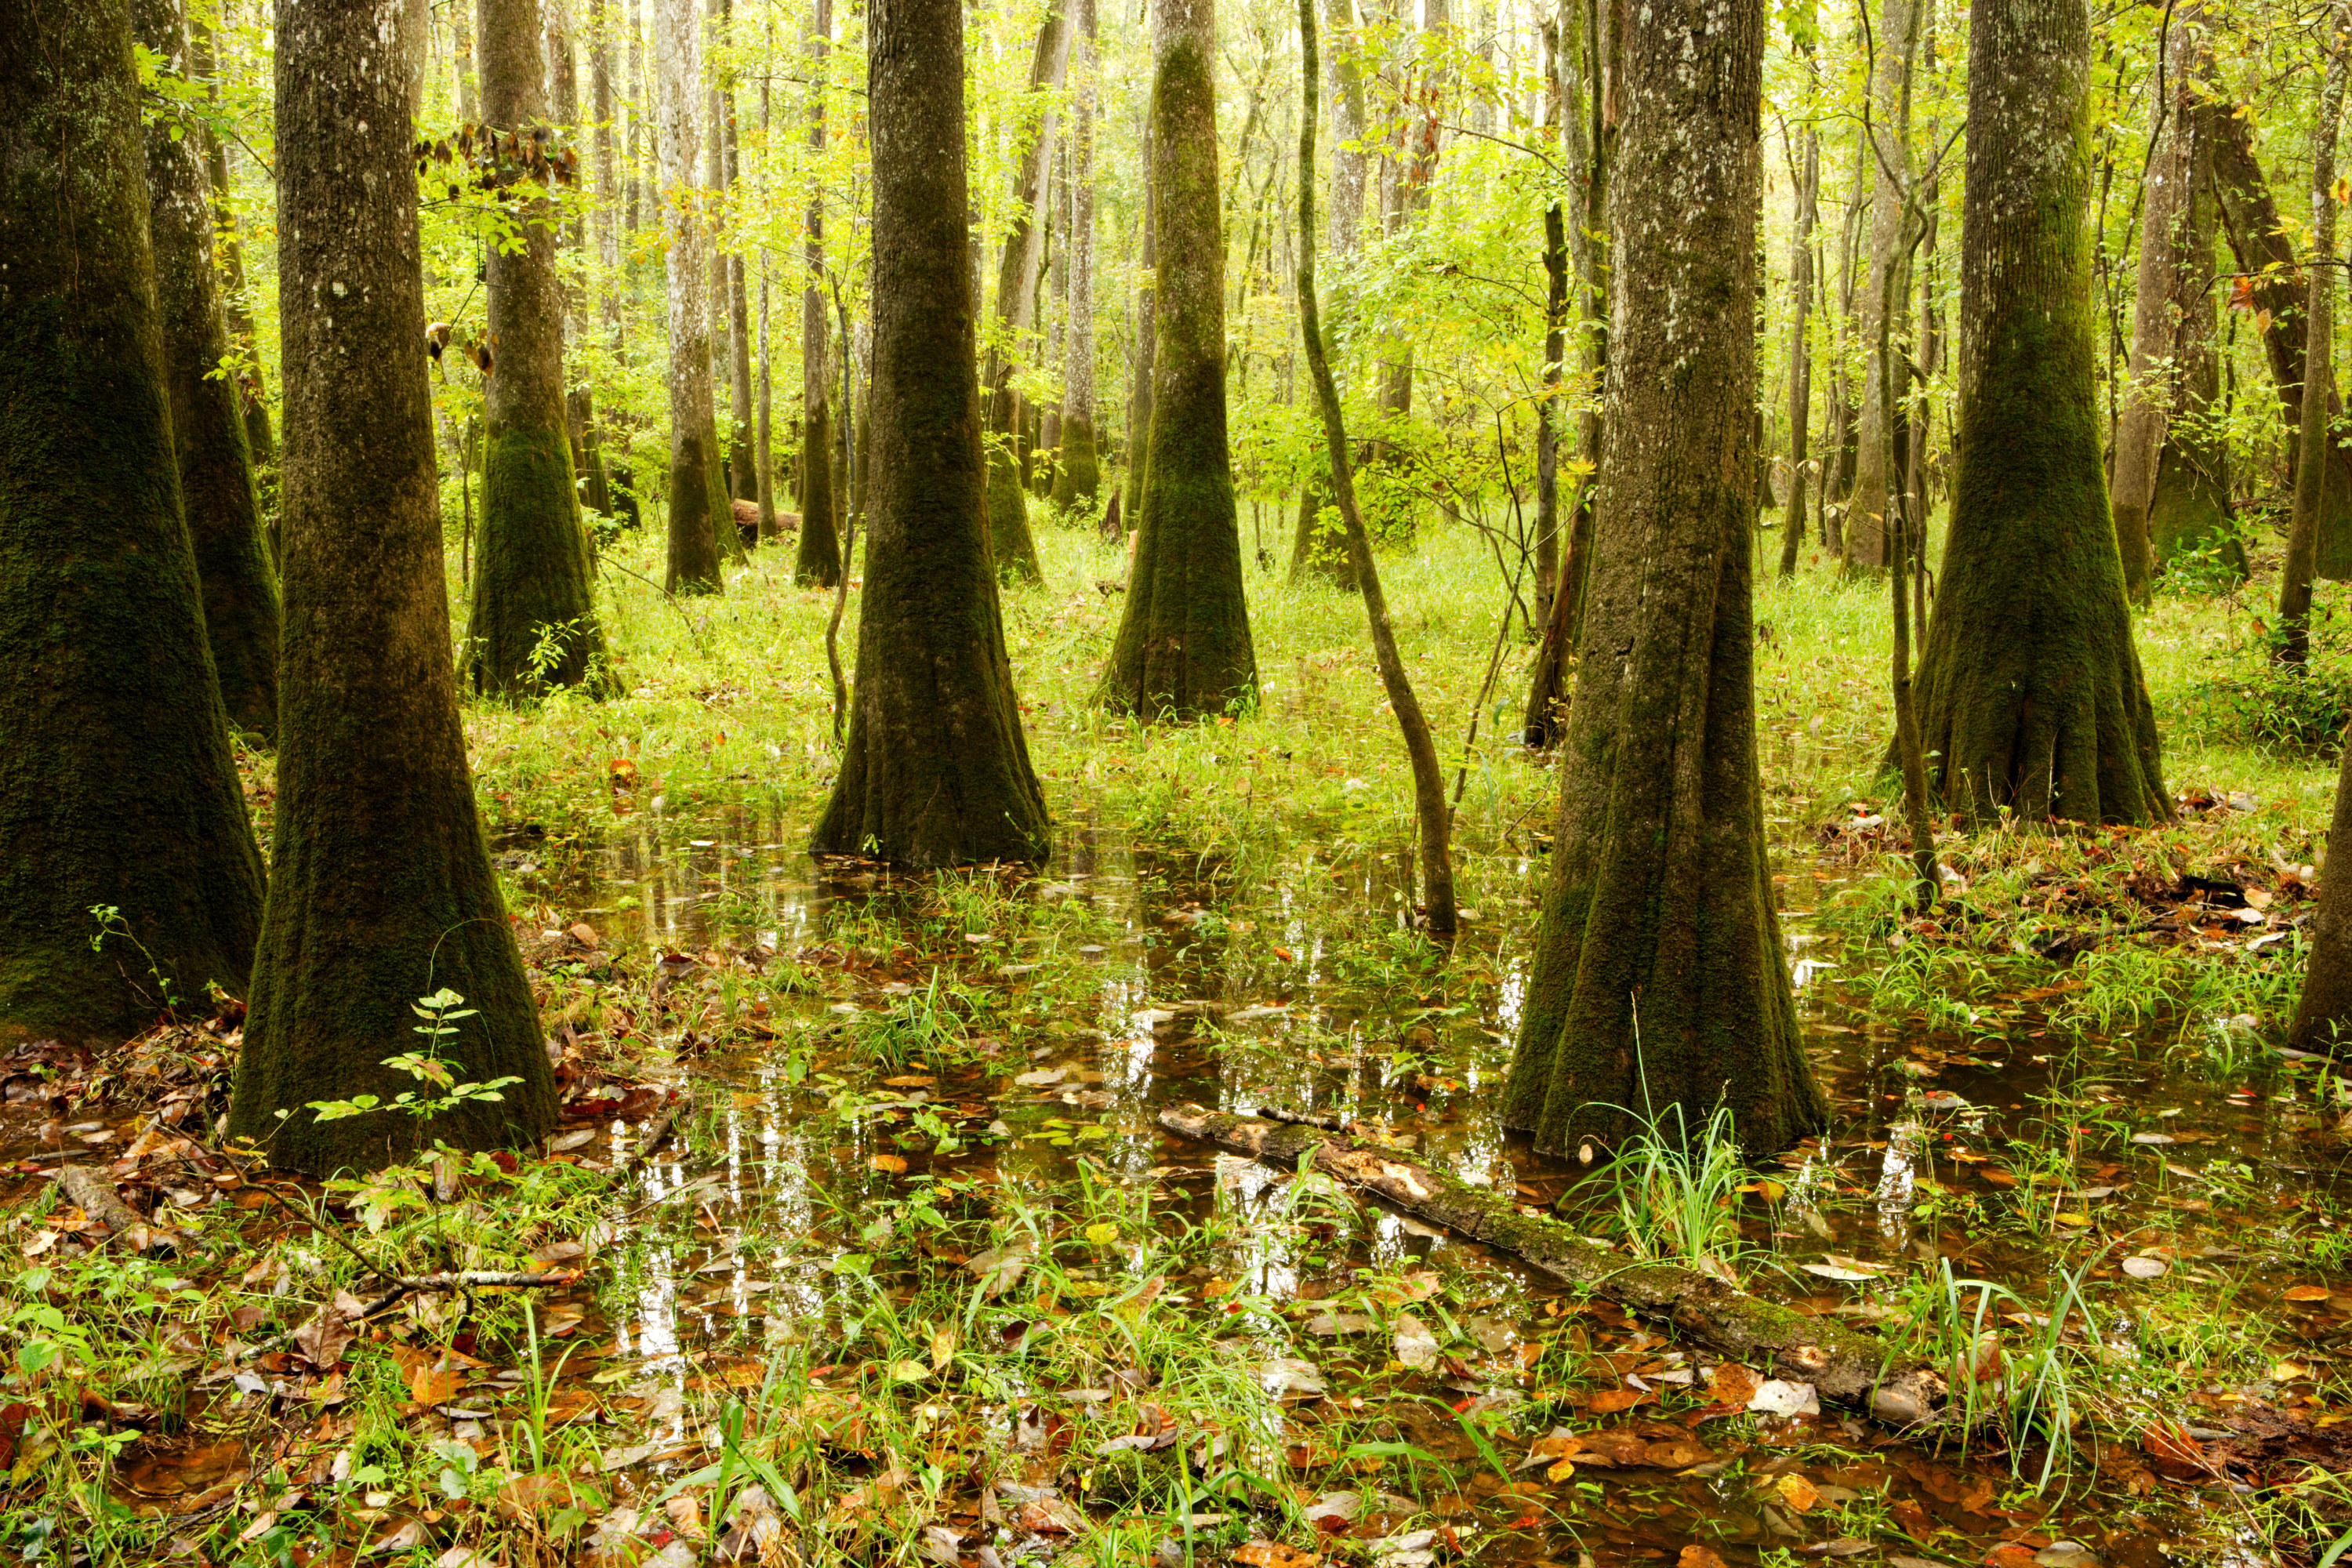 A swampy and lush forest of hardwood trees in Congaree national park.